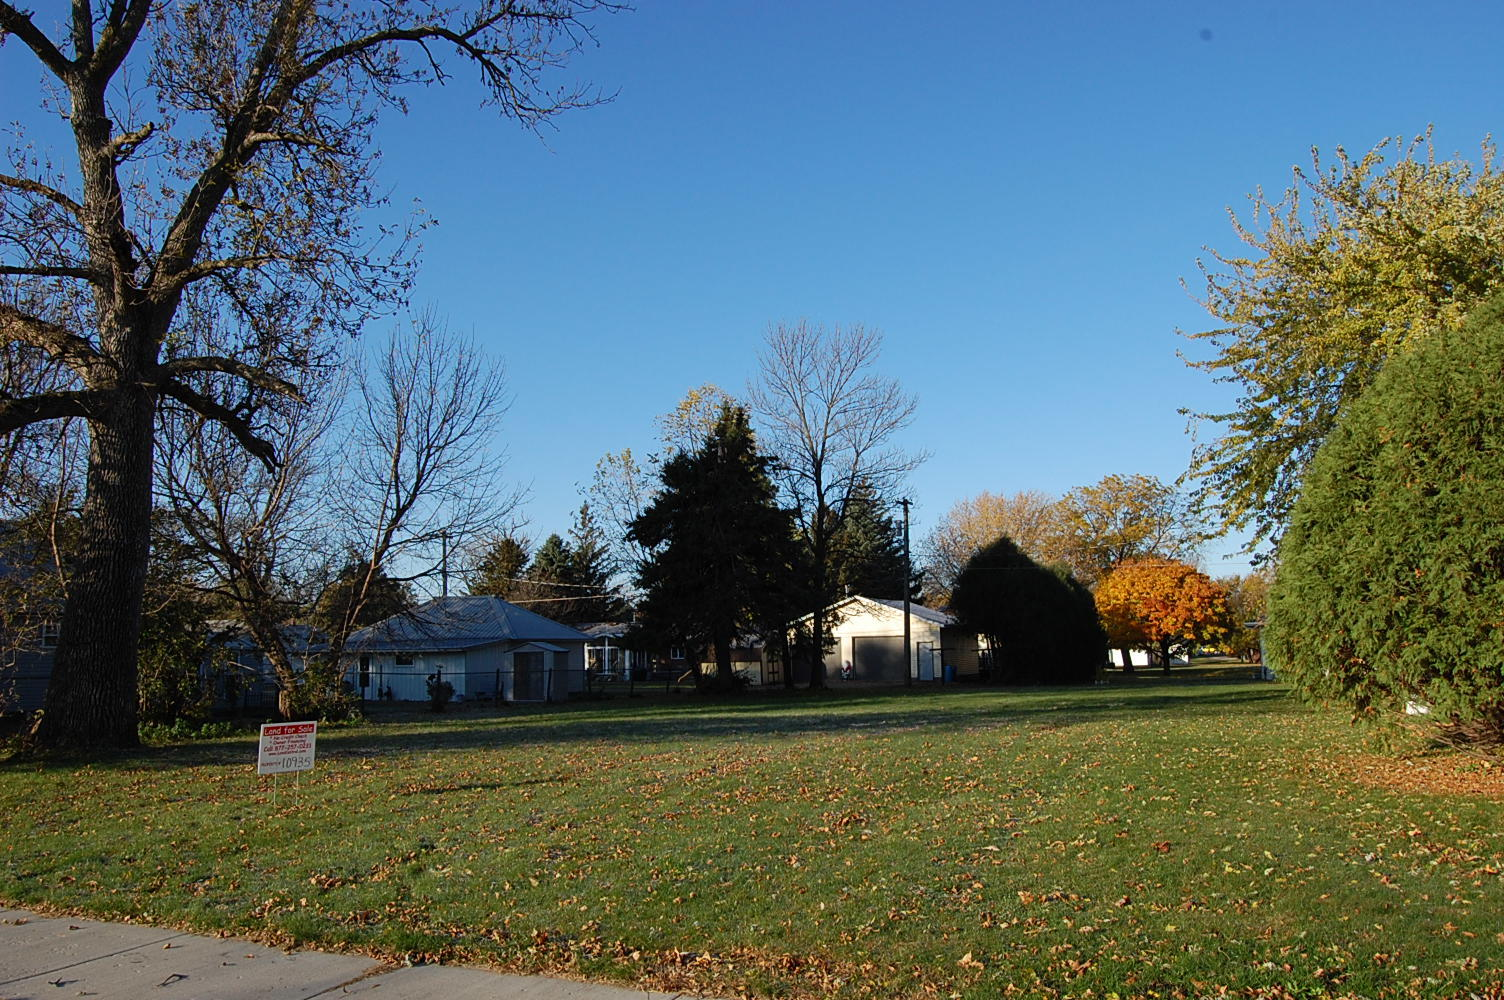 Small Town Minnesota Lot in Quiet Neighborhood - Image 3